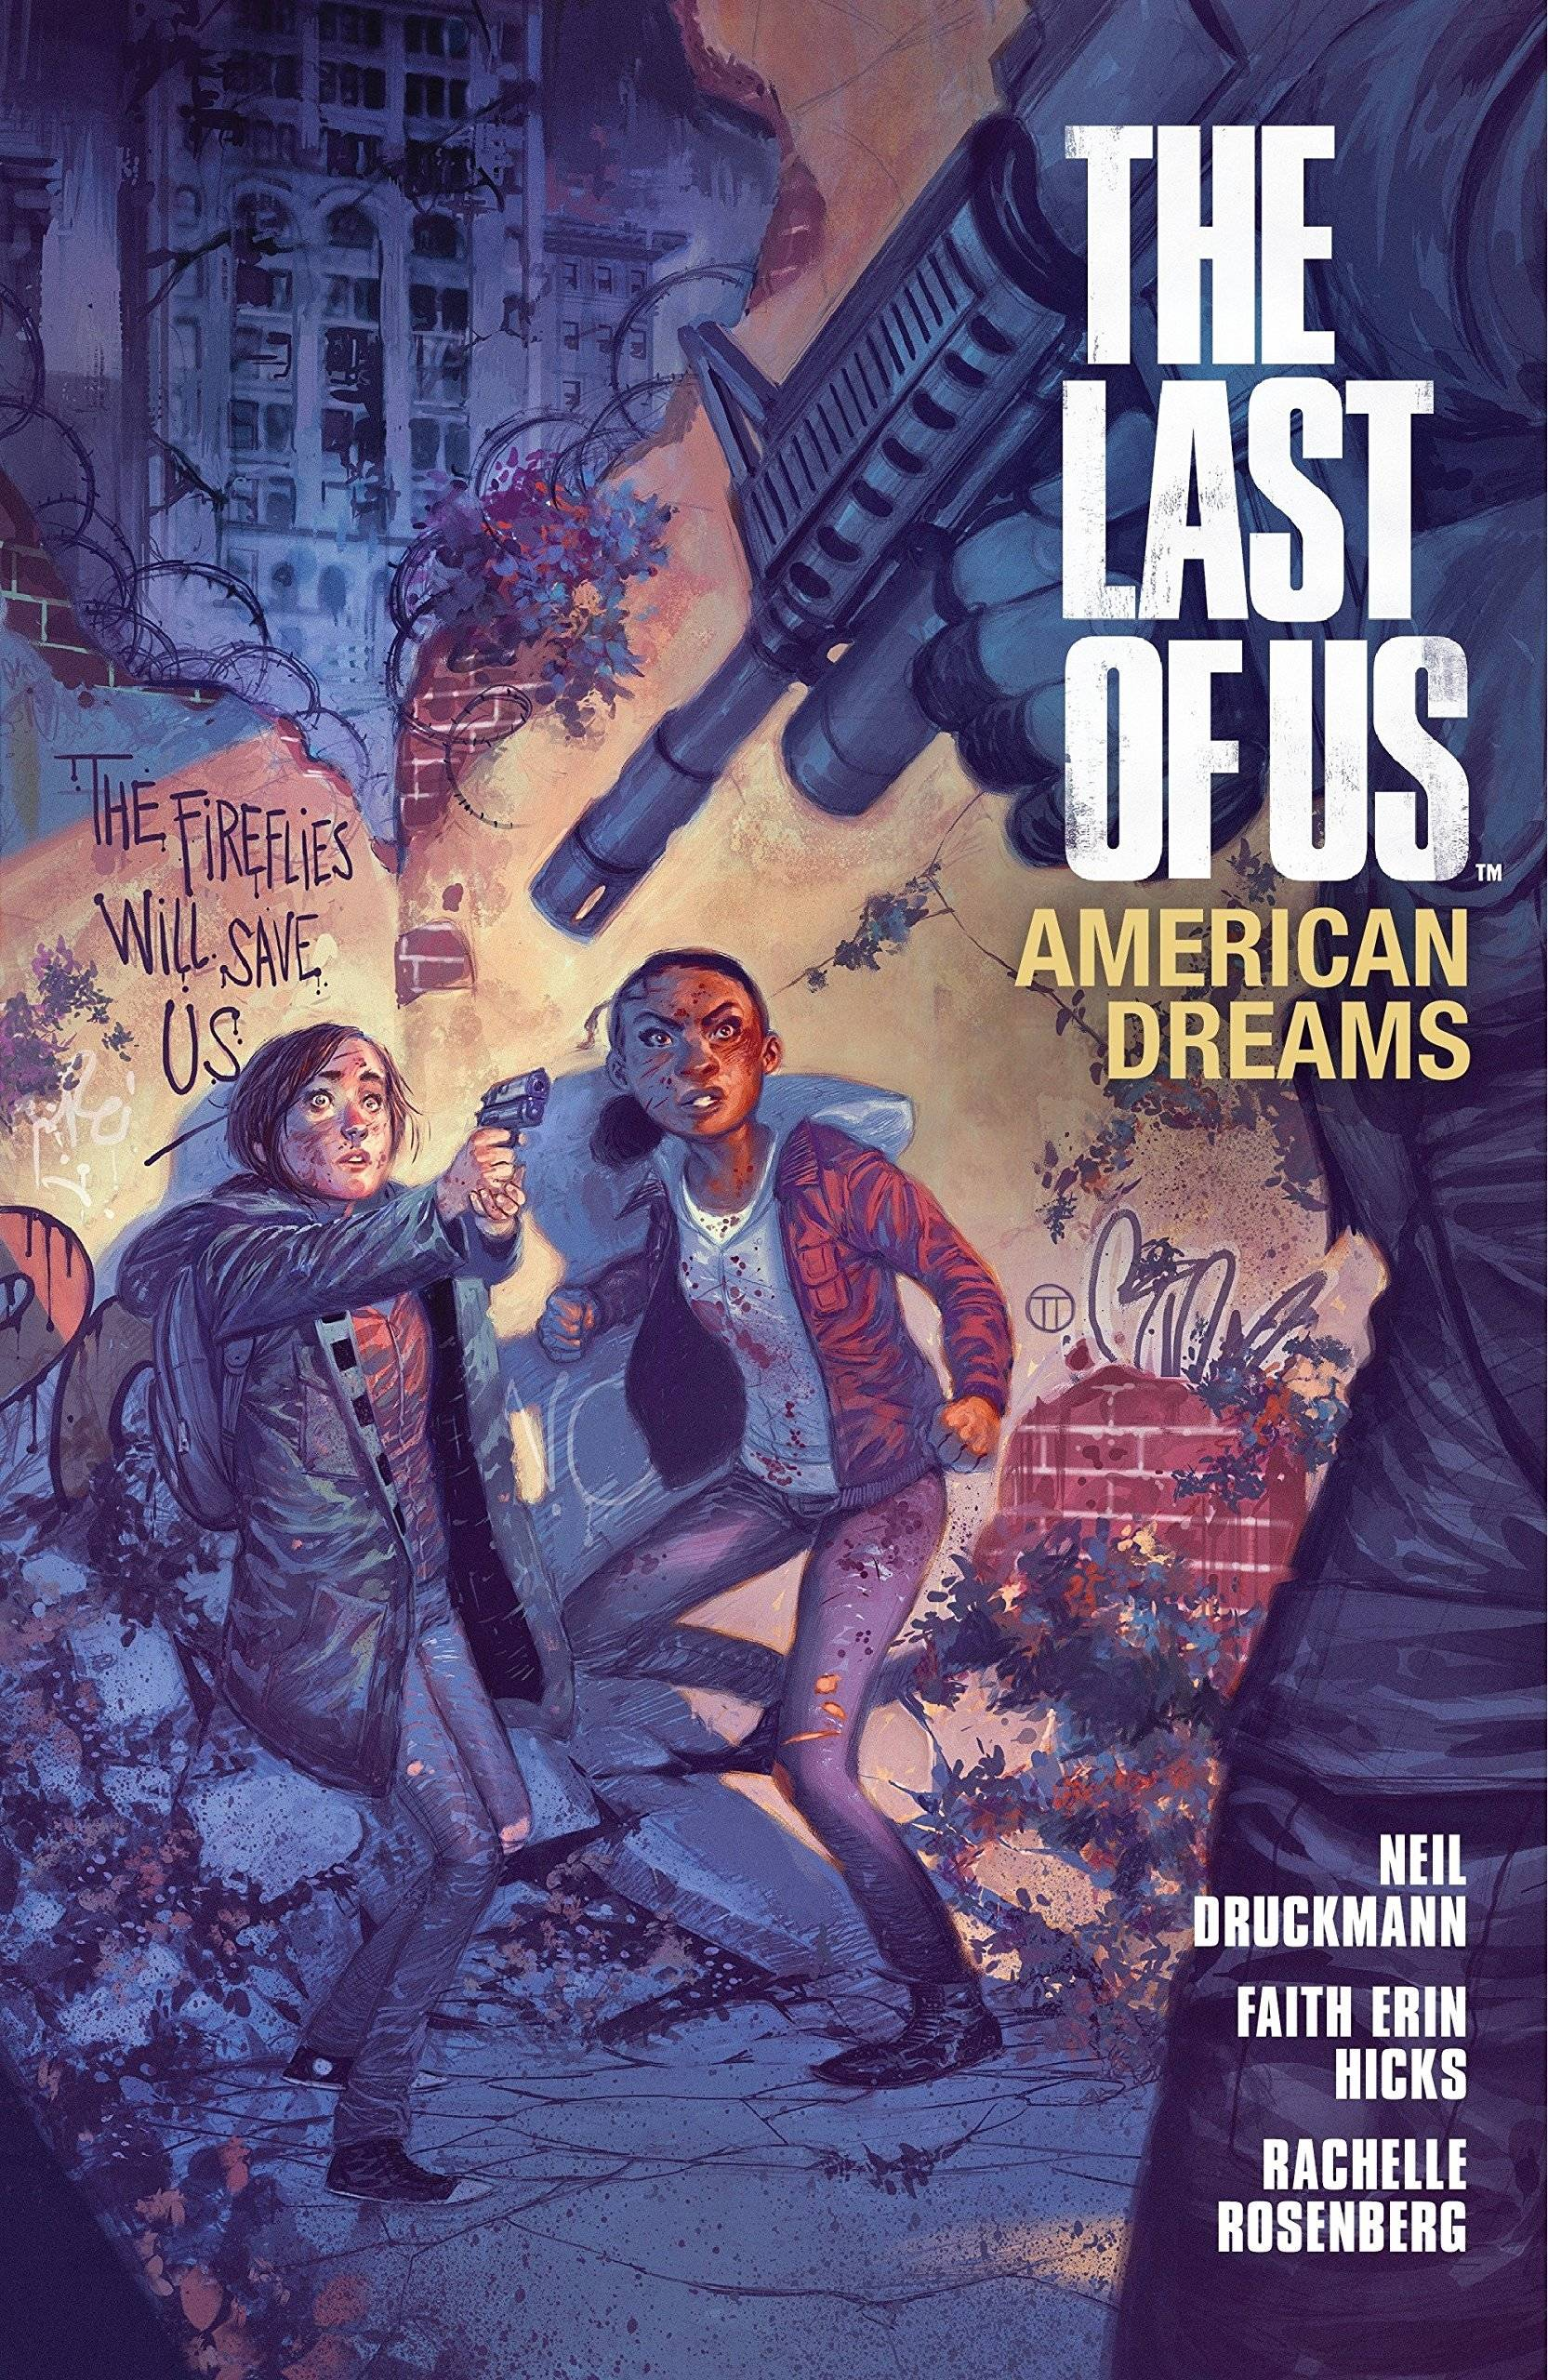 The Last of Us - American Dreams